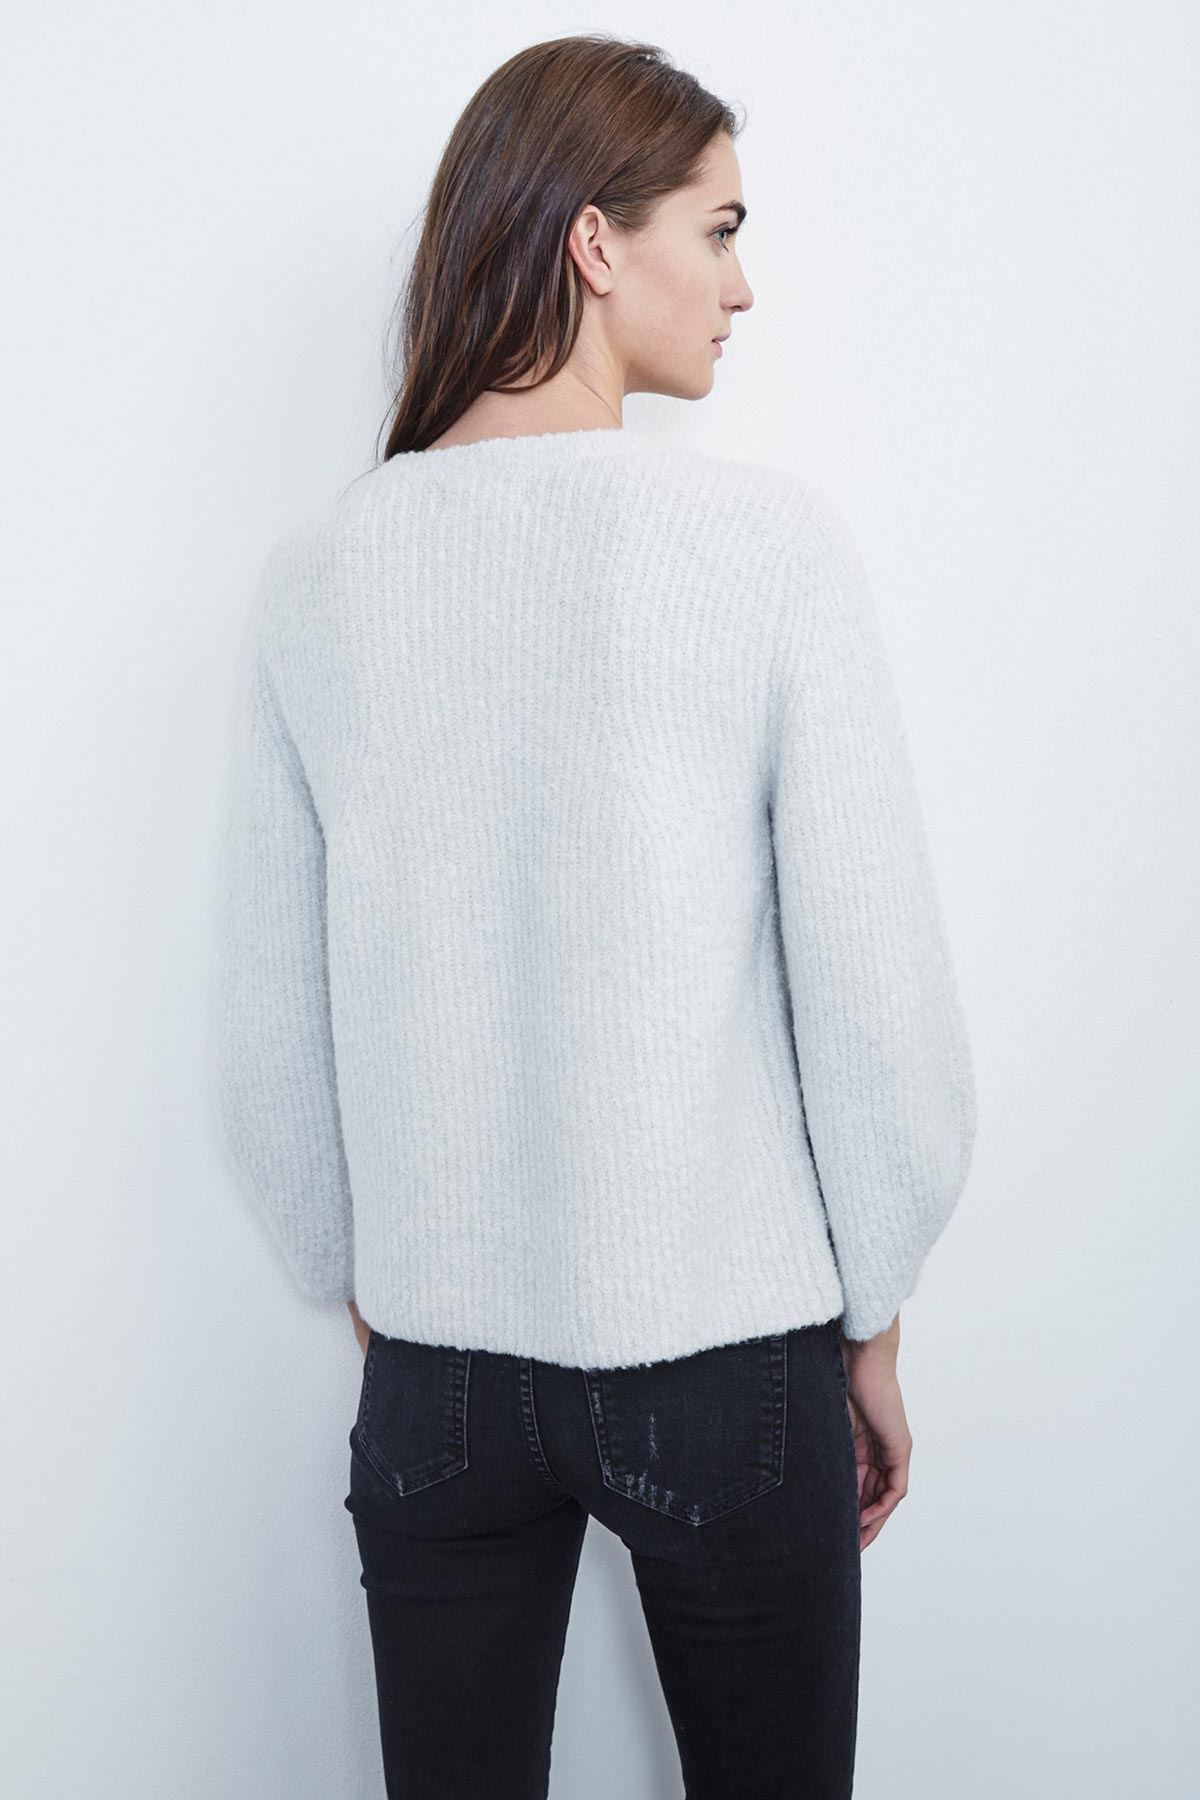 JERRI PLUSH BOUCLE CREW NECK SWEATER